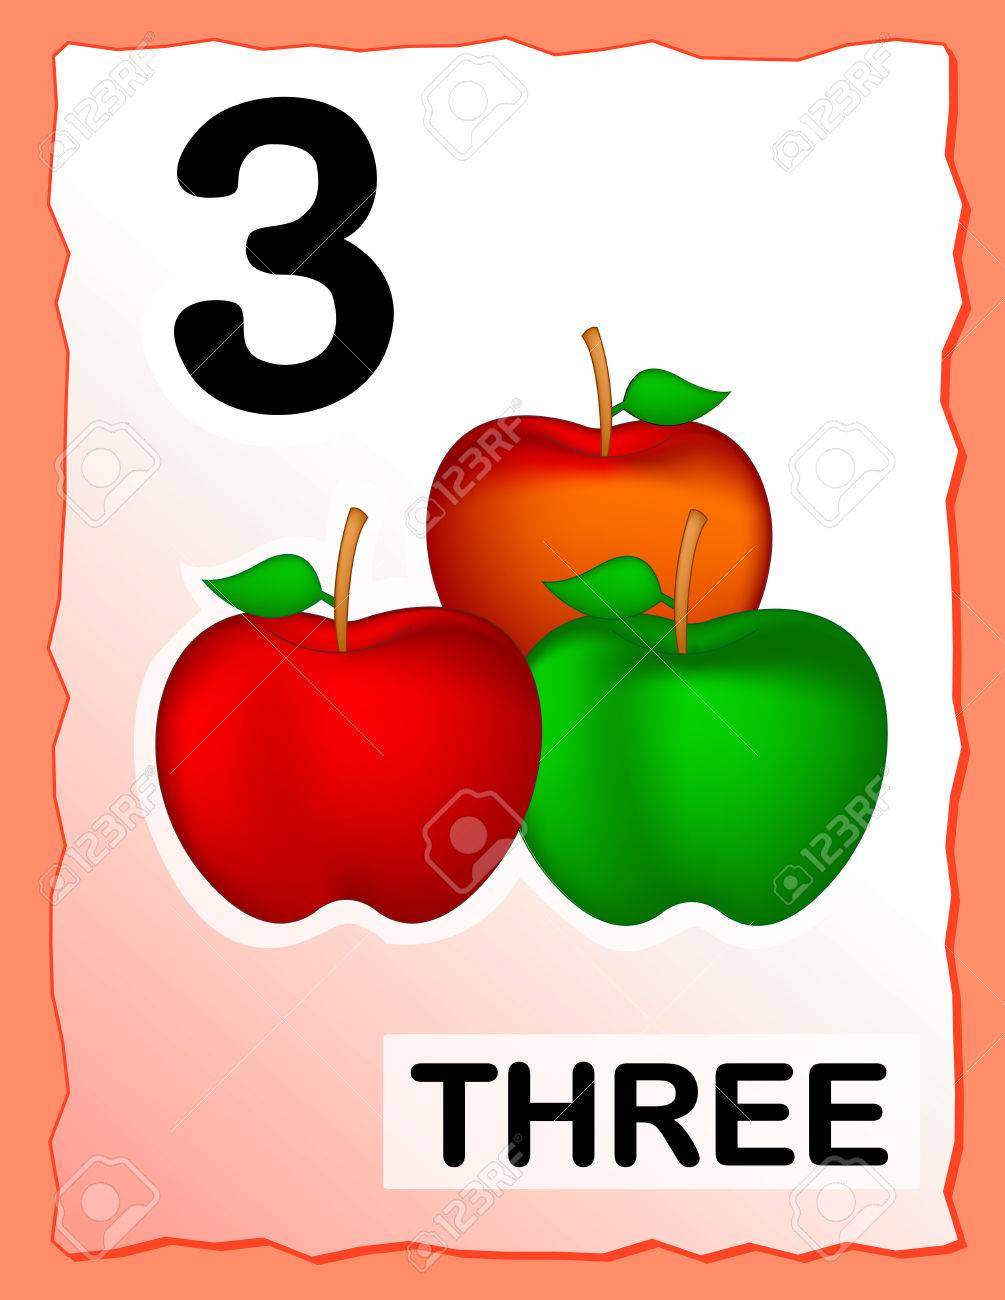 Worksheet Kids Number Learning kids learning material printable number three card with an illustration of apples stock vector